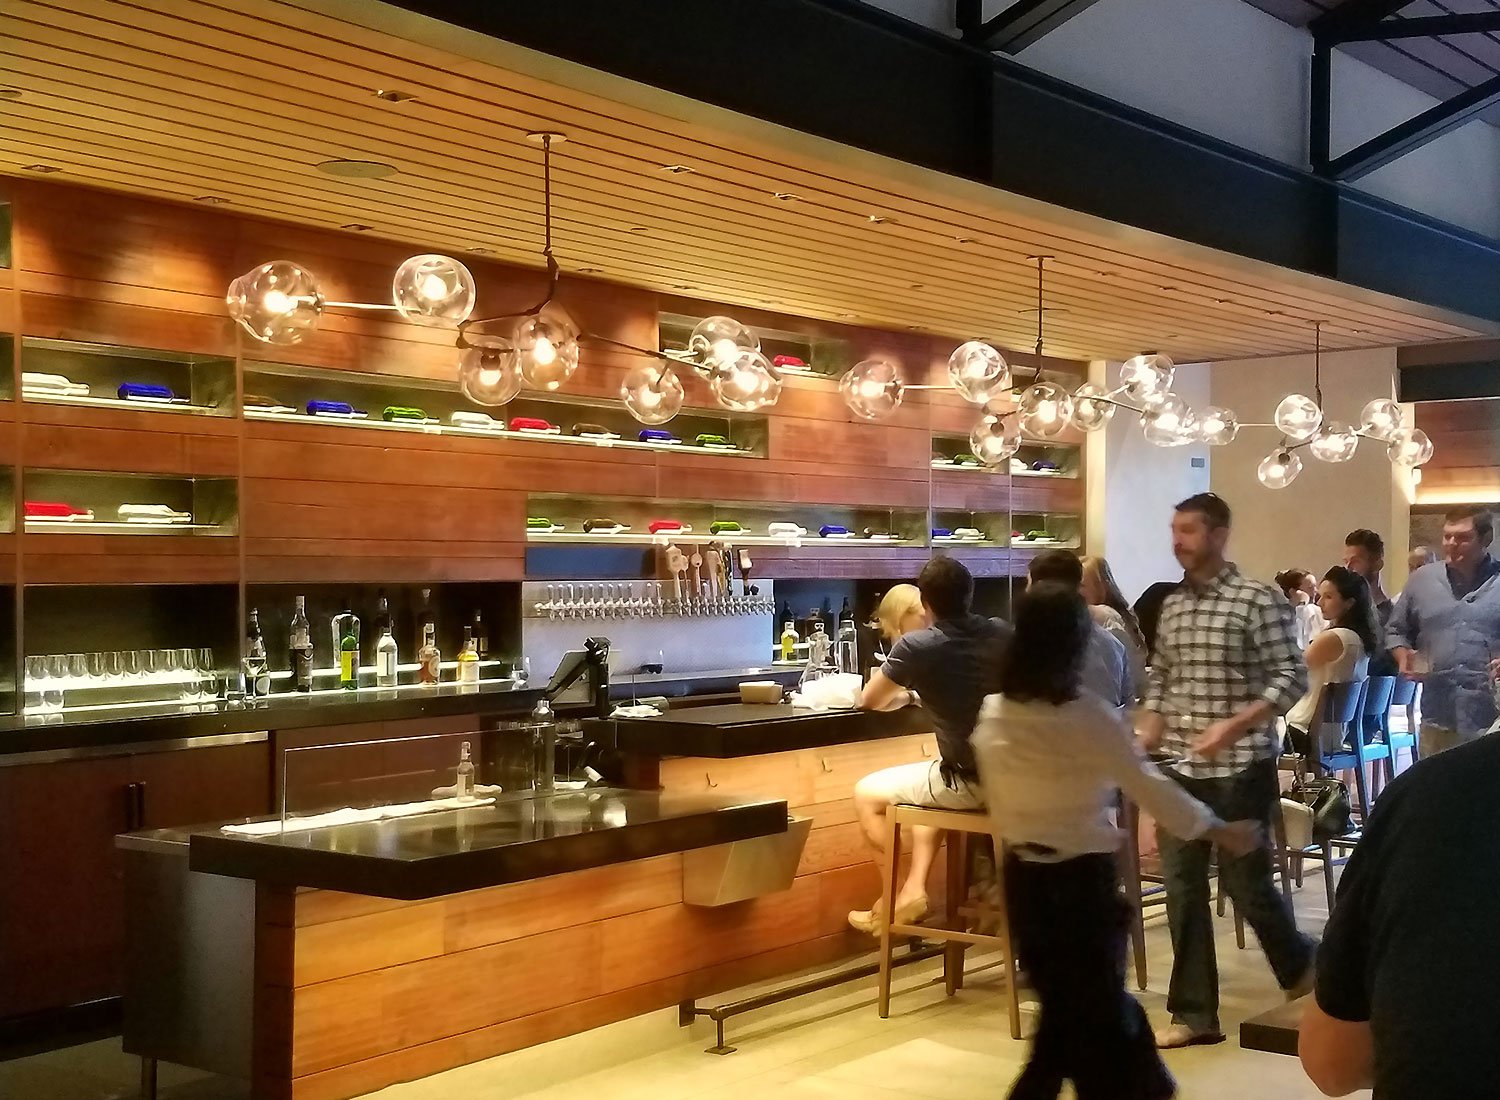 Two Birds One Stone has opened in St. Helena, Napa, with Michelin-starred chefs Douglas Keane and Sang Yoon. Heather Irwin